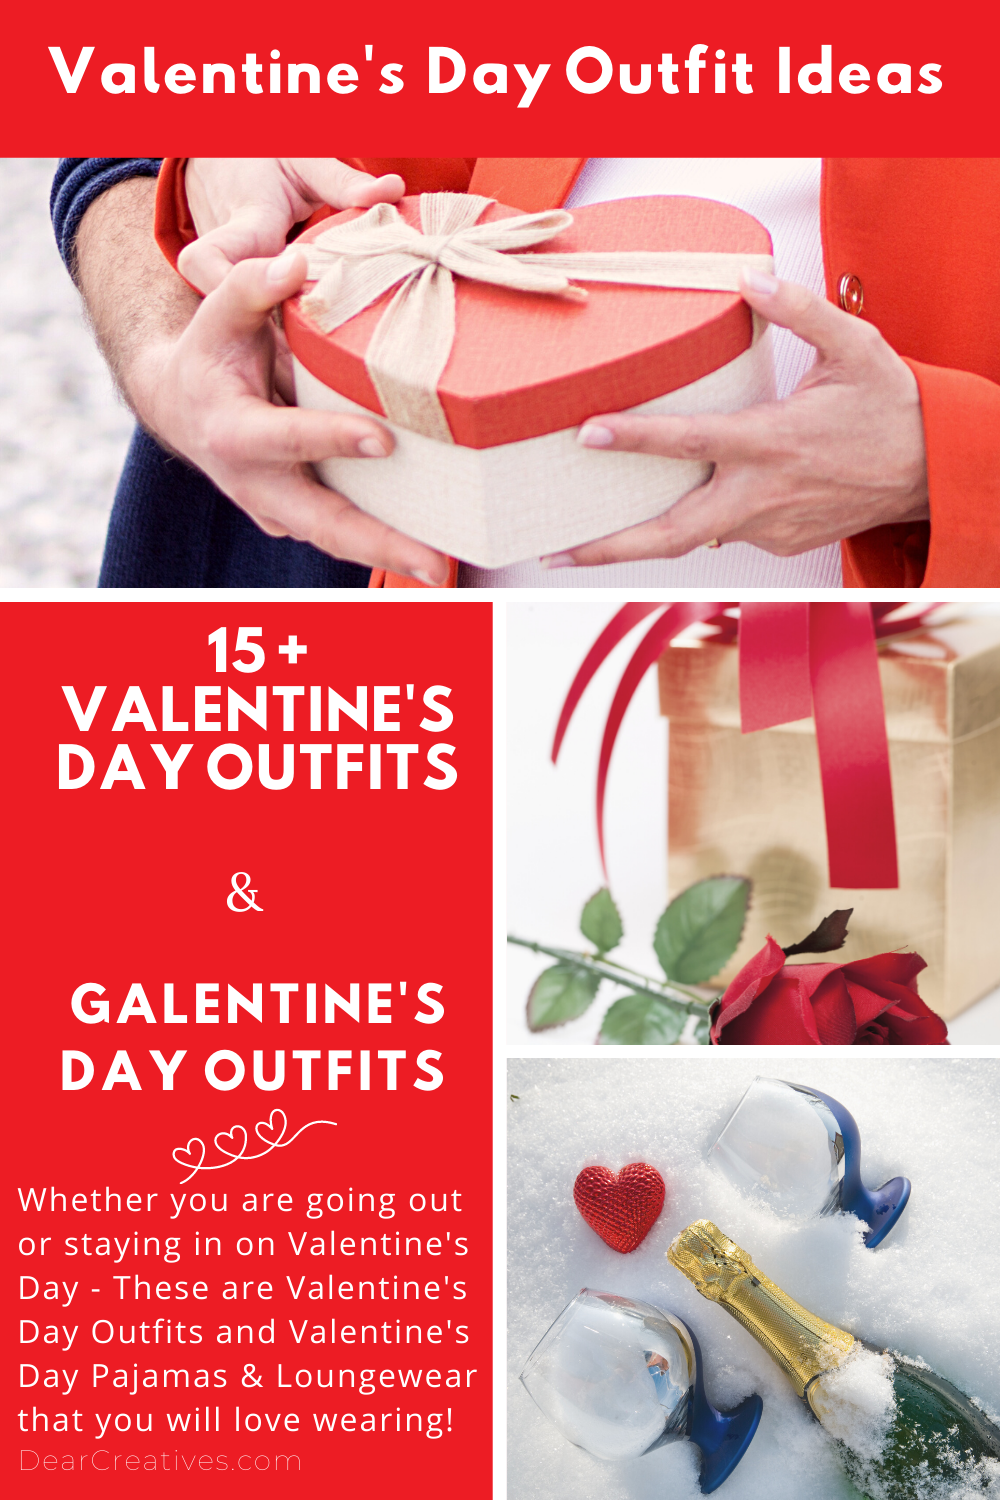 Are you staying in or going out on a date for Valentine's? Or celebrating Galentine's Day with your close inner circle of gal pals? Like most of us, we might be celebrating Valentine's Day remotely… We are sharing where you can get cute outfits and...